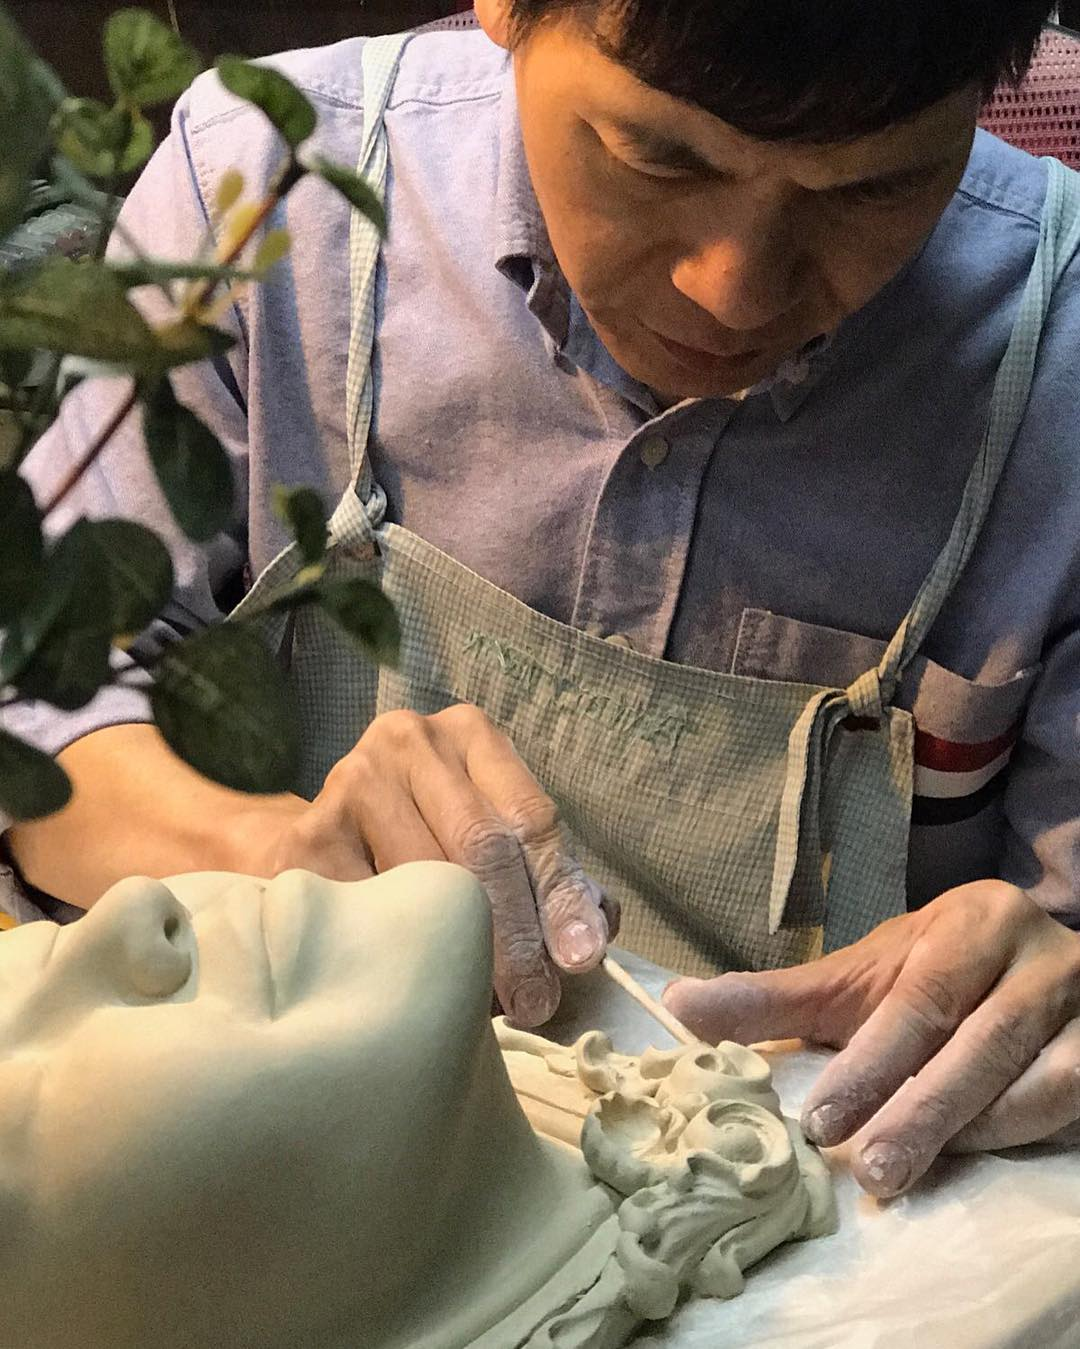 johnson tsang artist 16465823 782221721936219 8256814879822839808 n